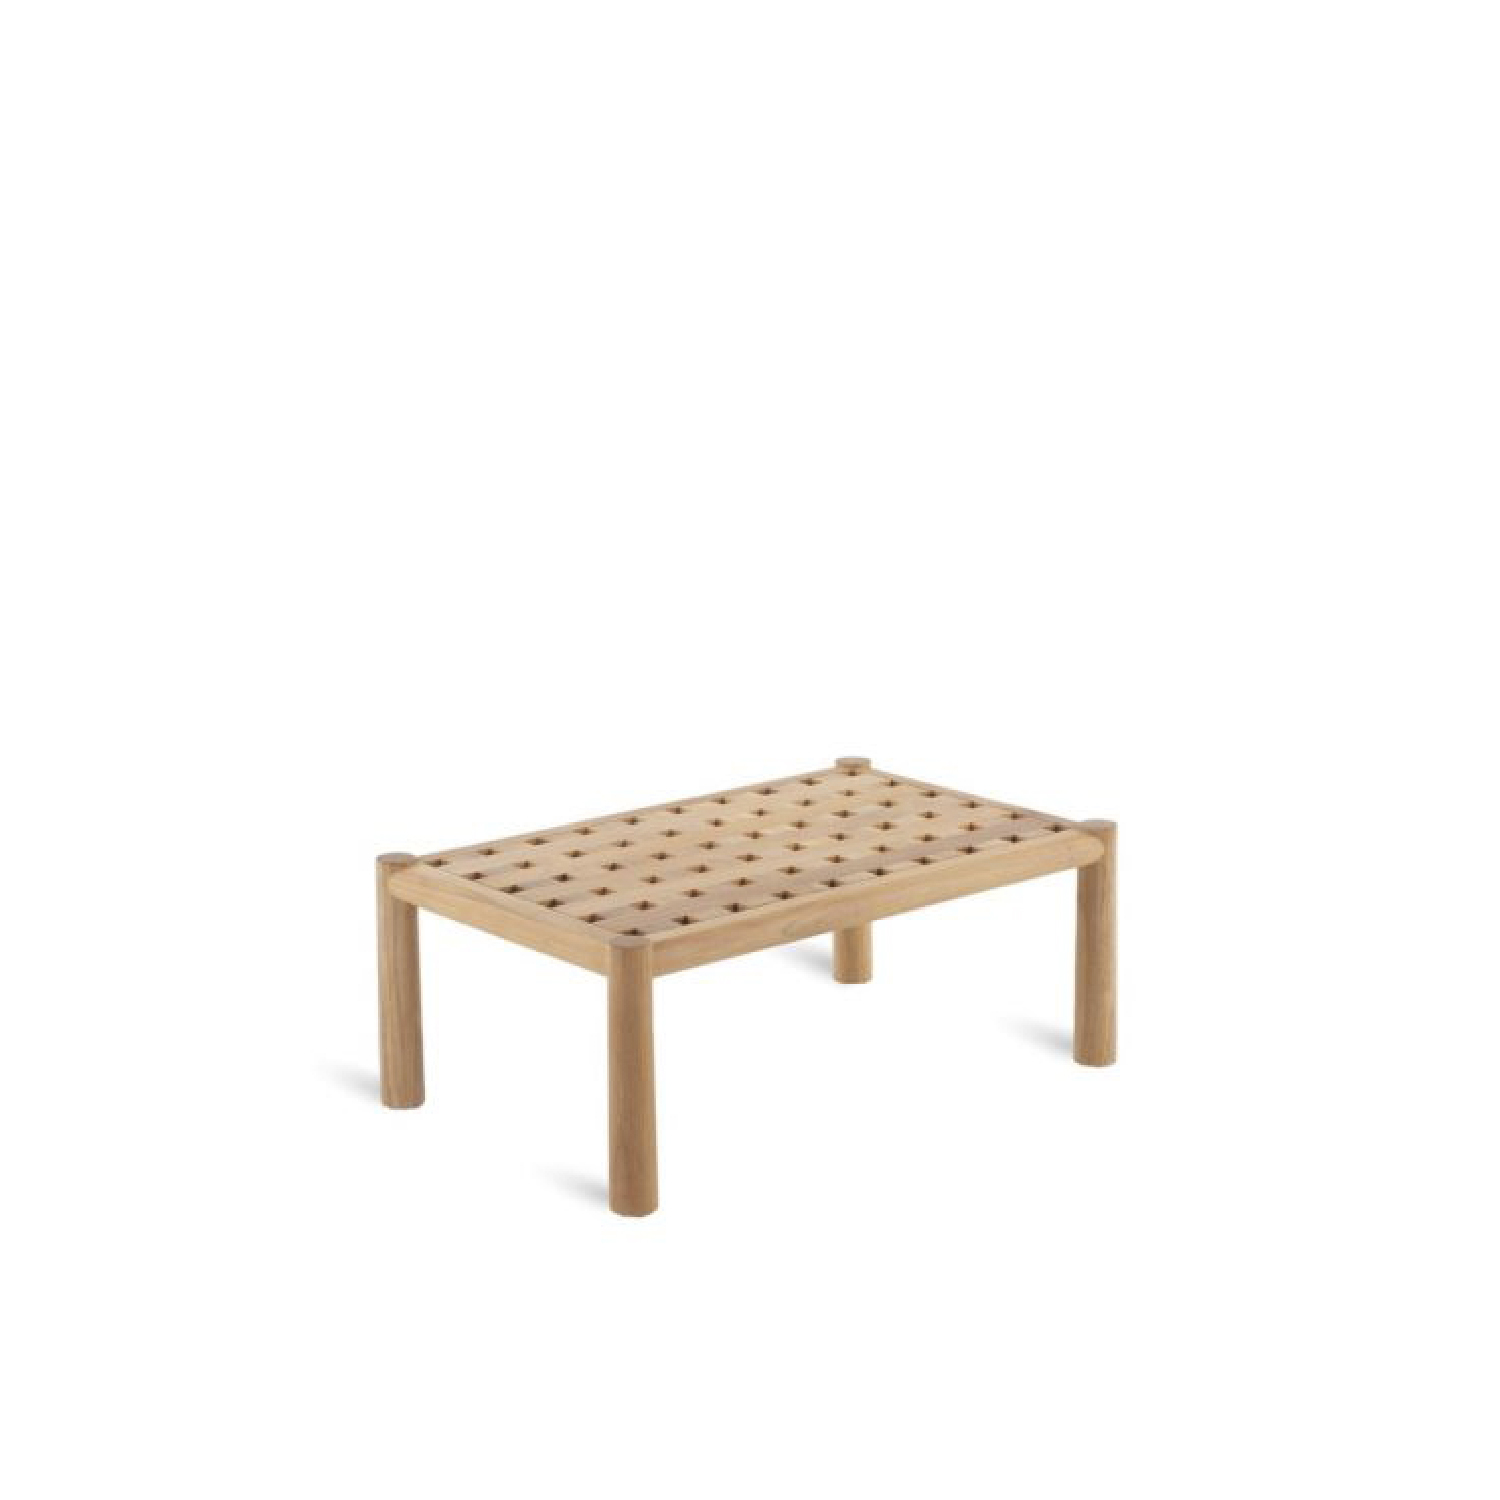 Pevero Rectangular Coffee Table - The new really complete Pevero line exalts all the potential of teak, thanks to its clean essential design that highlights the round section of the wood.  Sofas, armchairs, tables both low and tall of various sizes, three different models of the chair and small armchair that are all well suited to other collections, as well as a sun lounger and a large round island, all characterized by teak worked in soft, rounded, graceful lines that are easy on the eye and guarantee maximum comfort, while tastefully furnishing any outdoor area.  Pevero rectangular coffee table (19.69 x 31.50 H 12.60) Structure in teak | Matter of Stuff